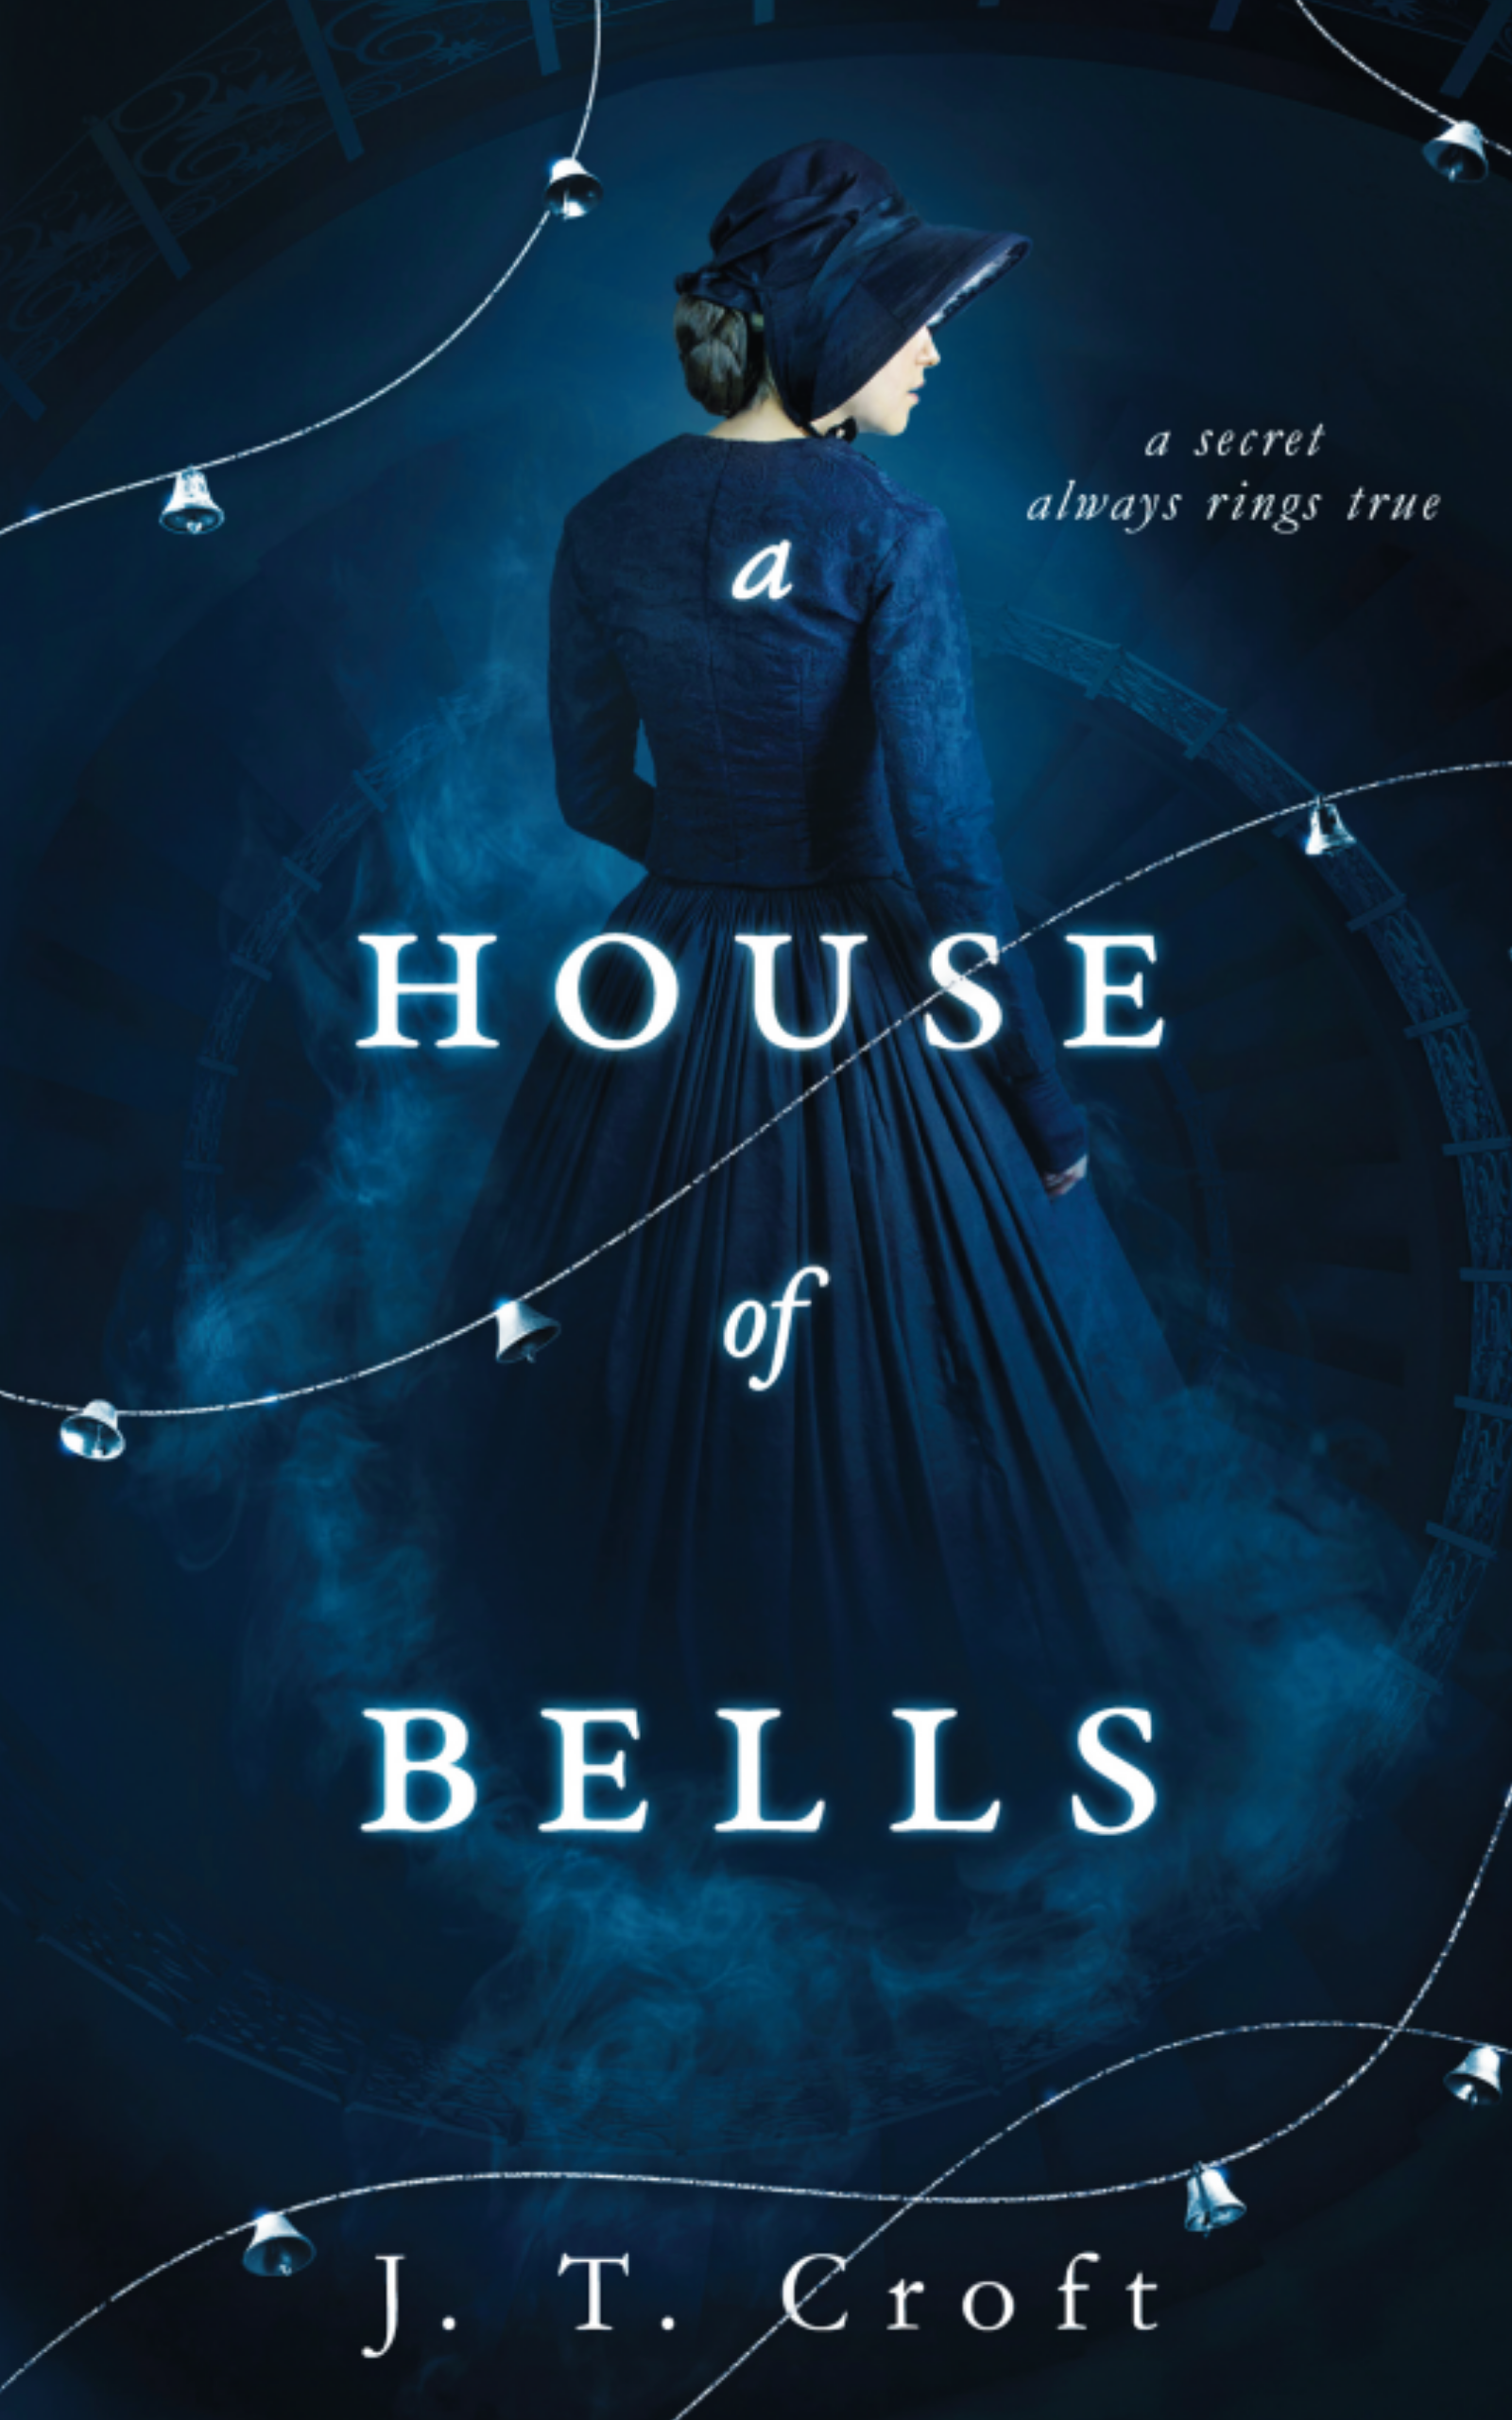 A House of Bells